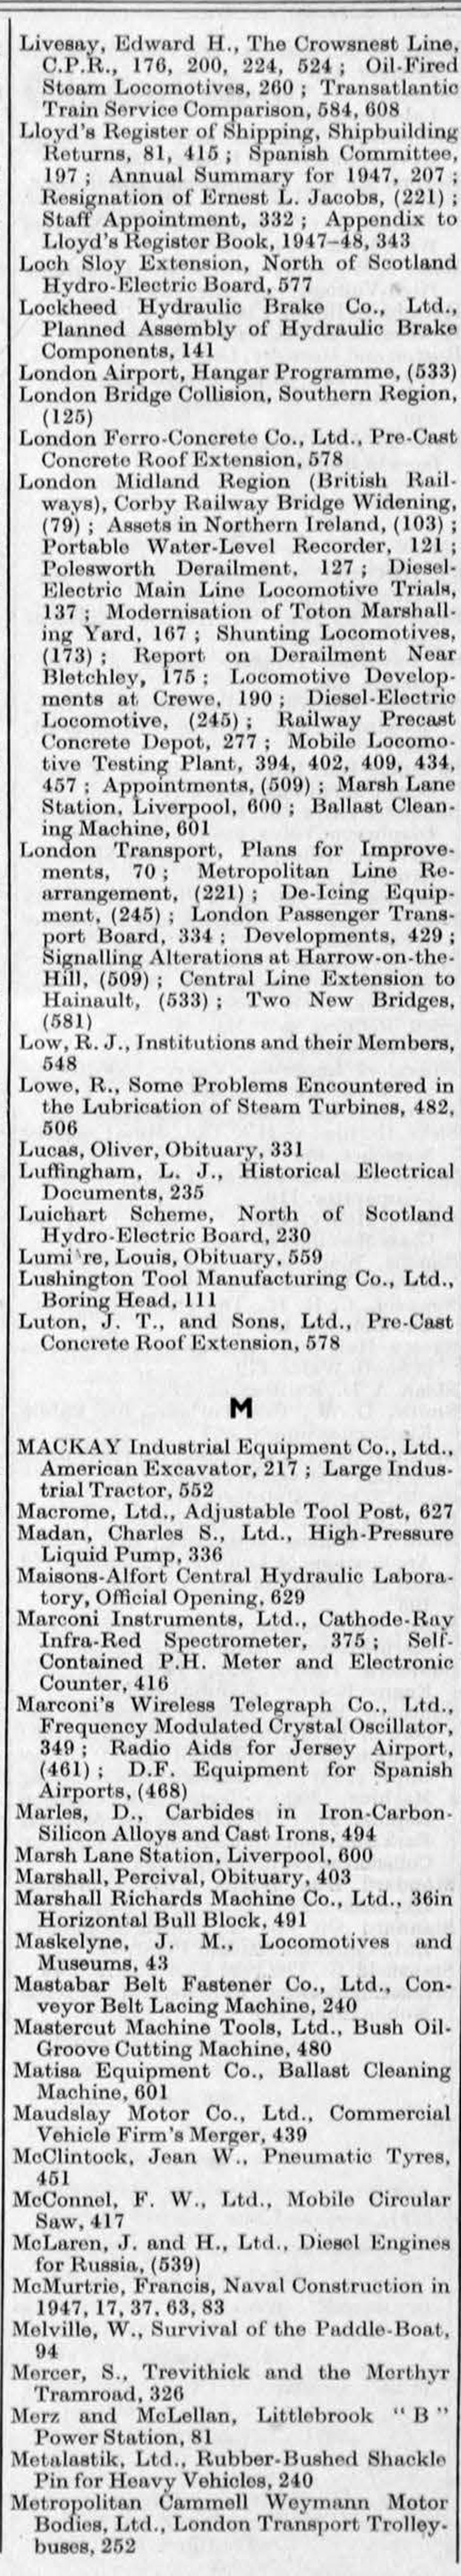 The Engineer 1948 Jan-Jun: Index - Graces Guide